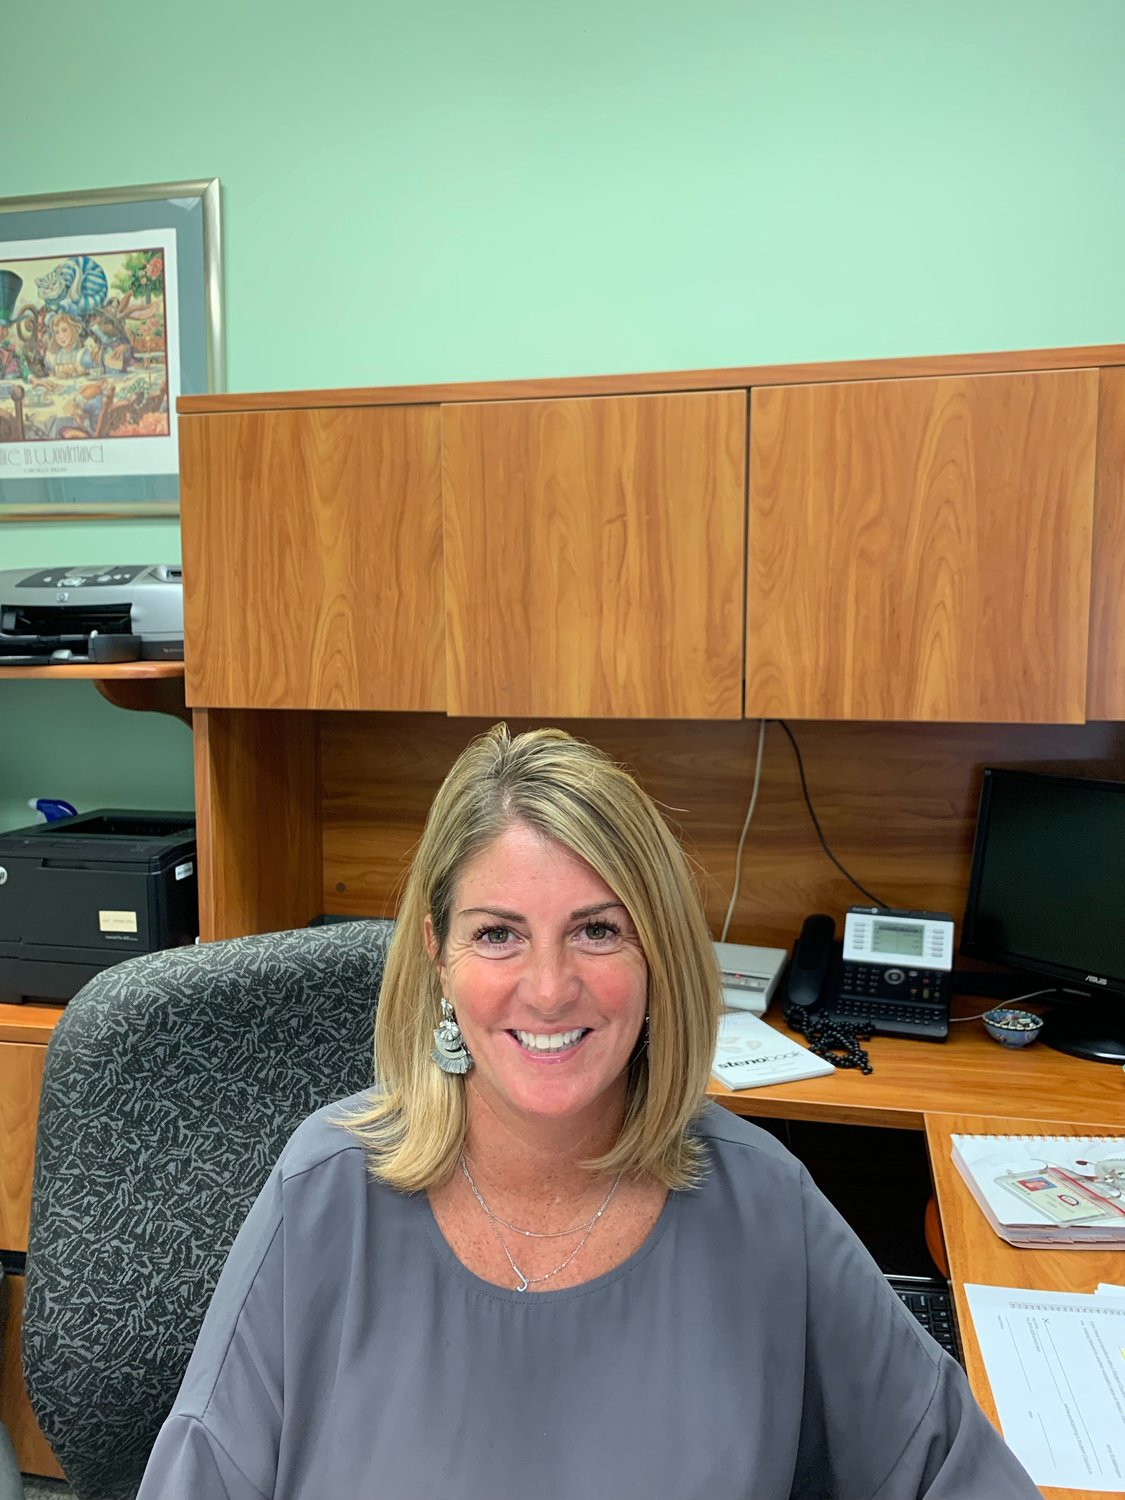 Jennifer Pascarella, longtime assistant principal at South Side Middle School, is the acting principal at Watson Elementary School.